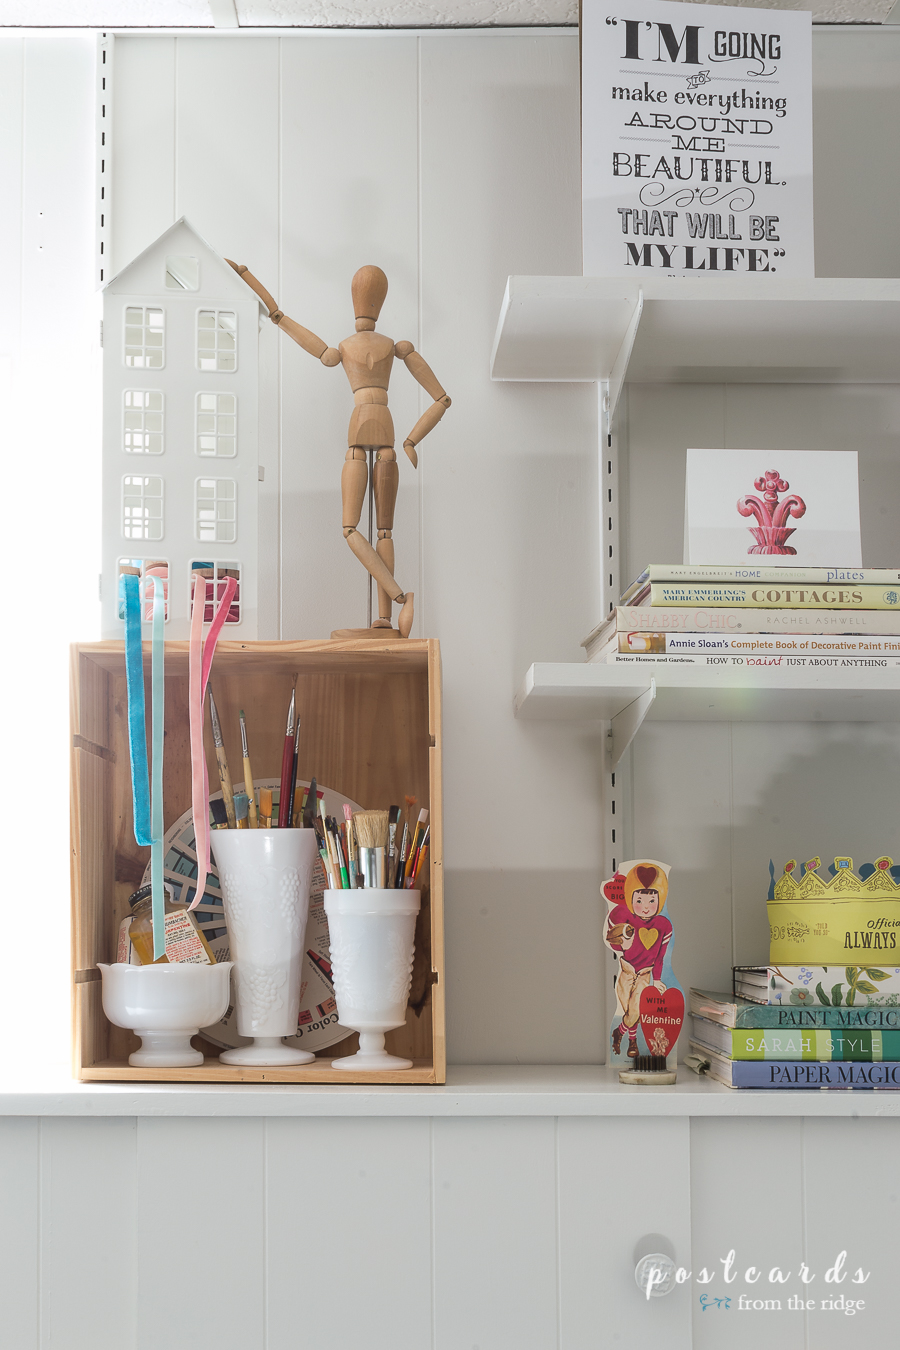 Wooden art mannequin and art brushes in milk glass vases